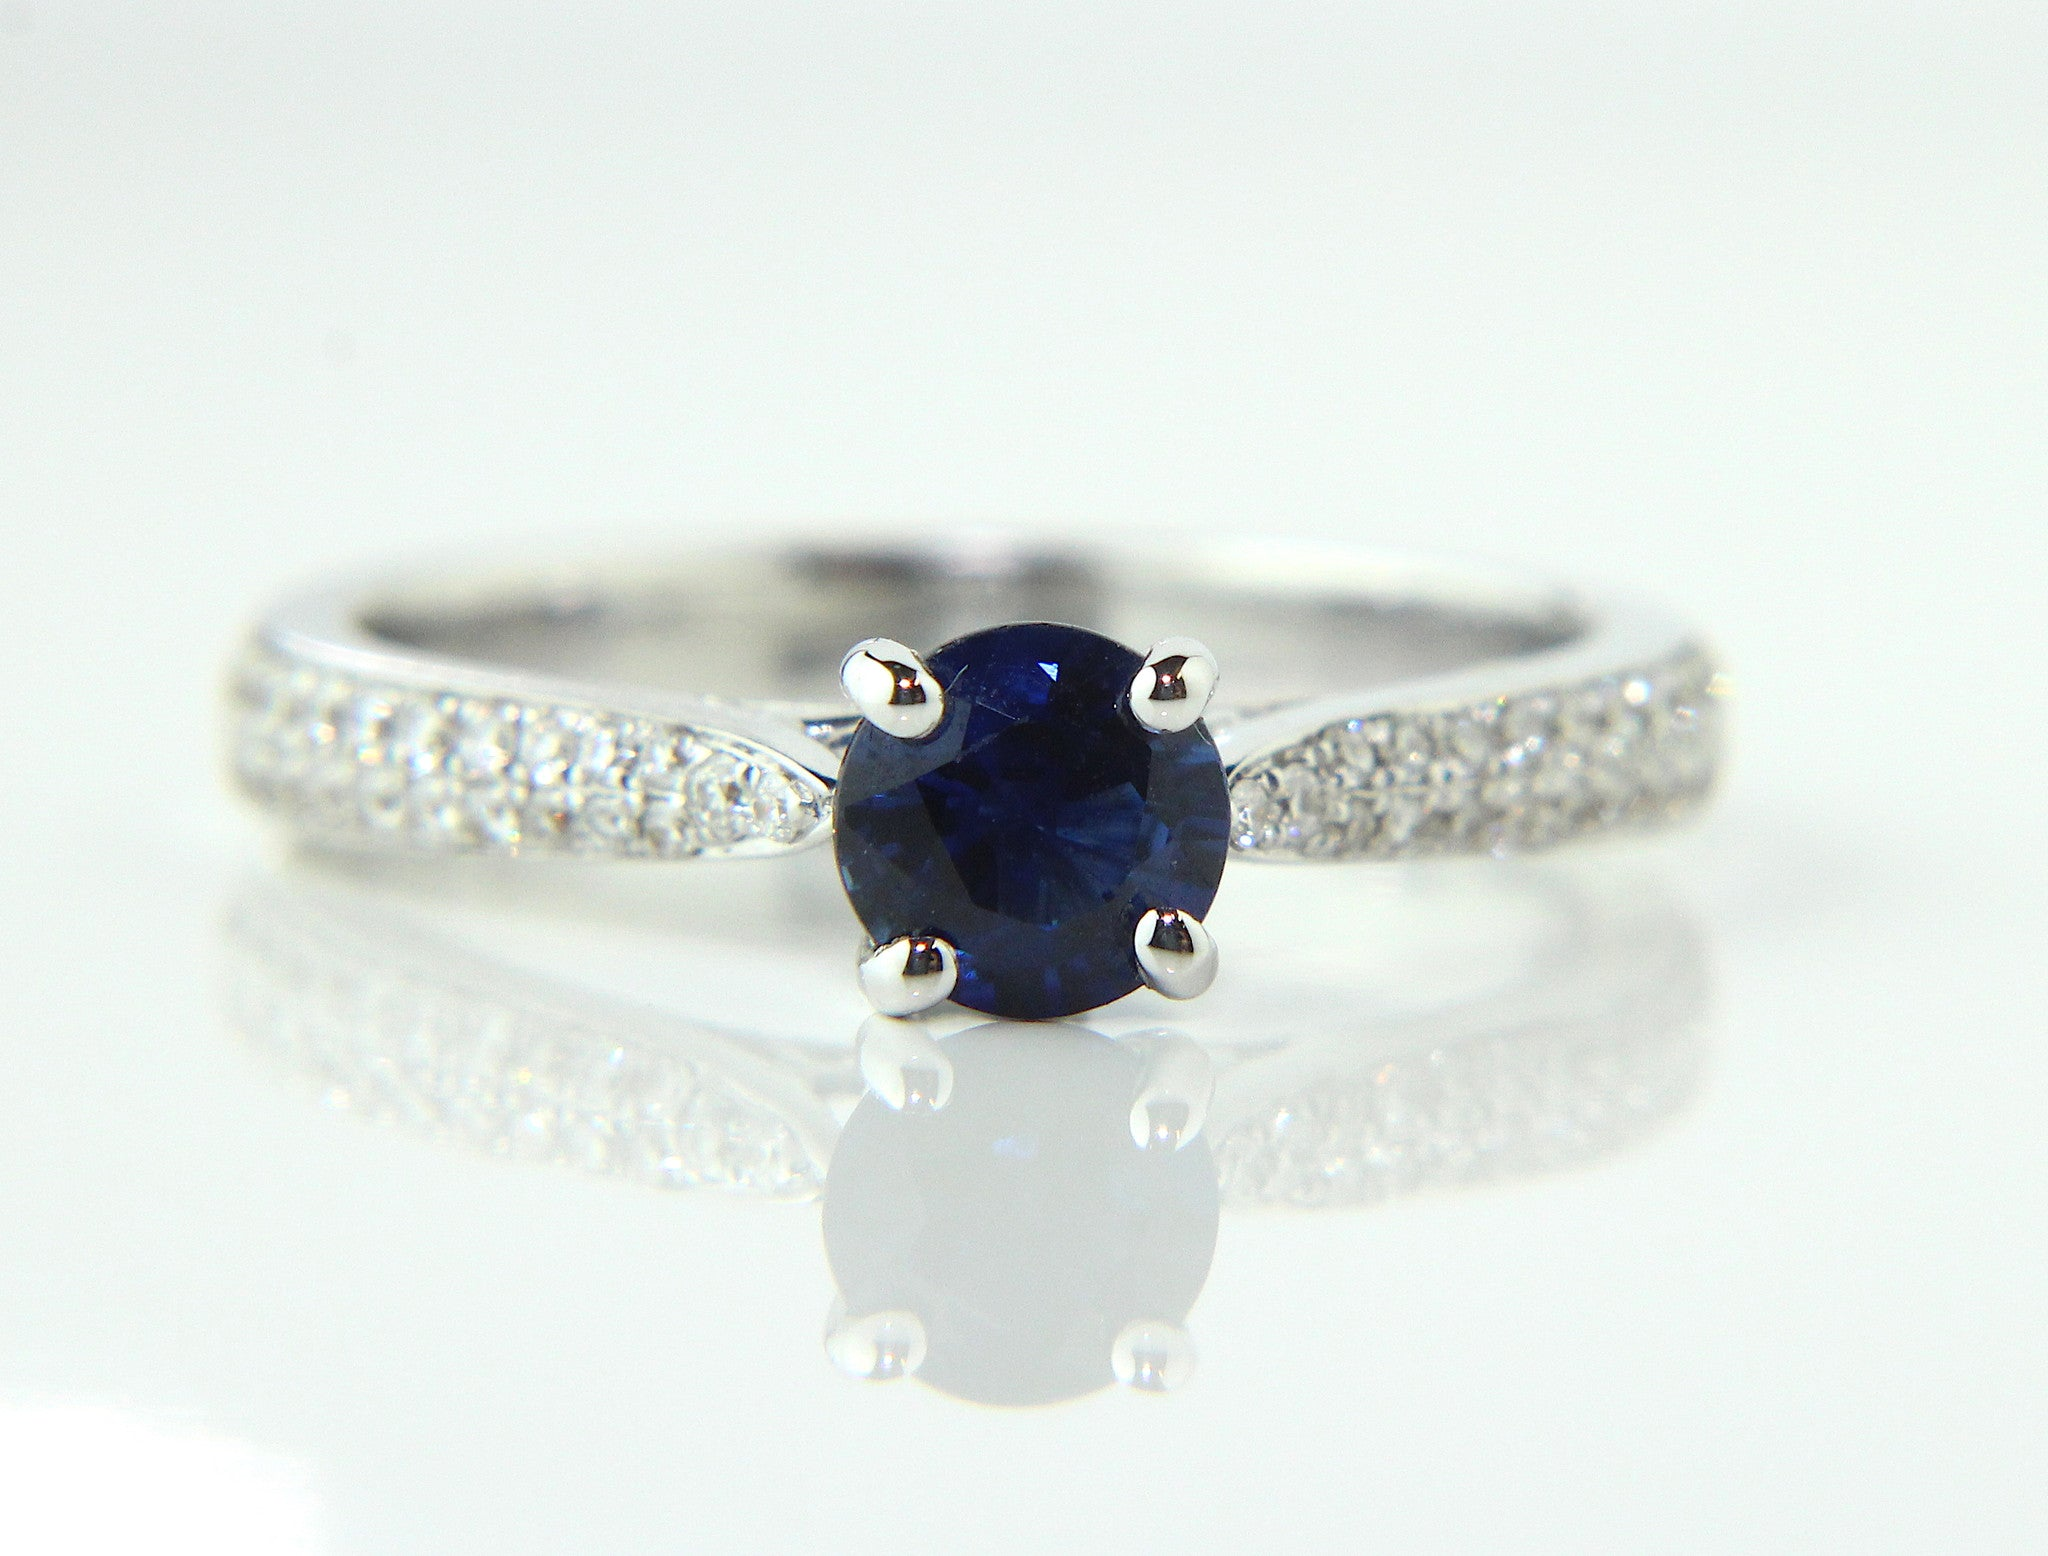 blue ring maniamania bluesapphire gold yellowgold solitaire belovedsolitairering side beloved products sapphire yellow darker midnight